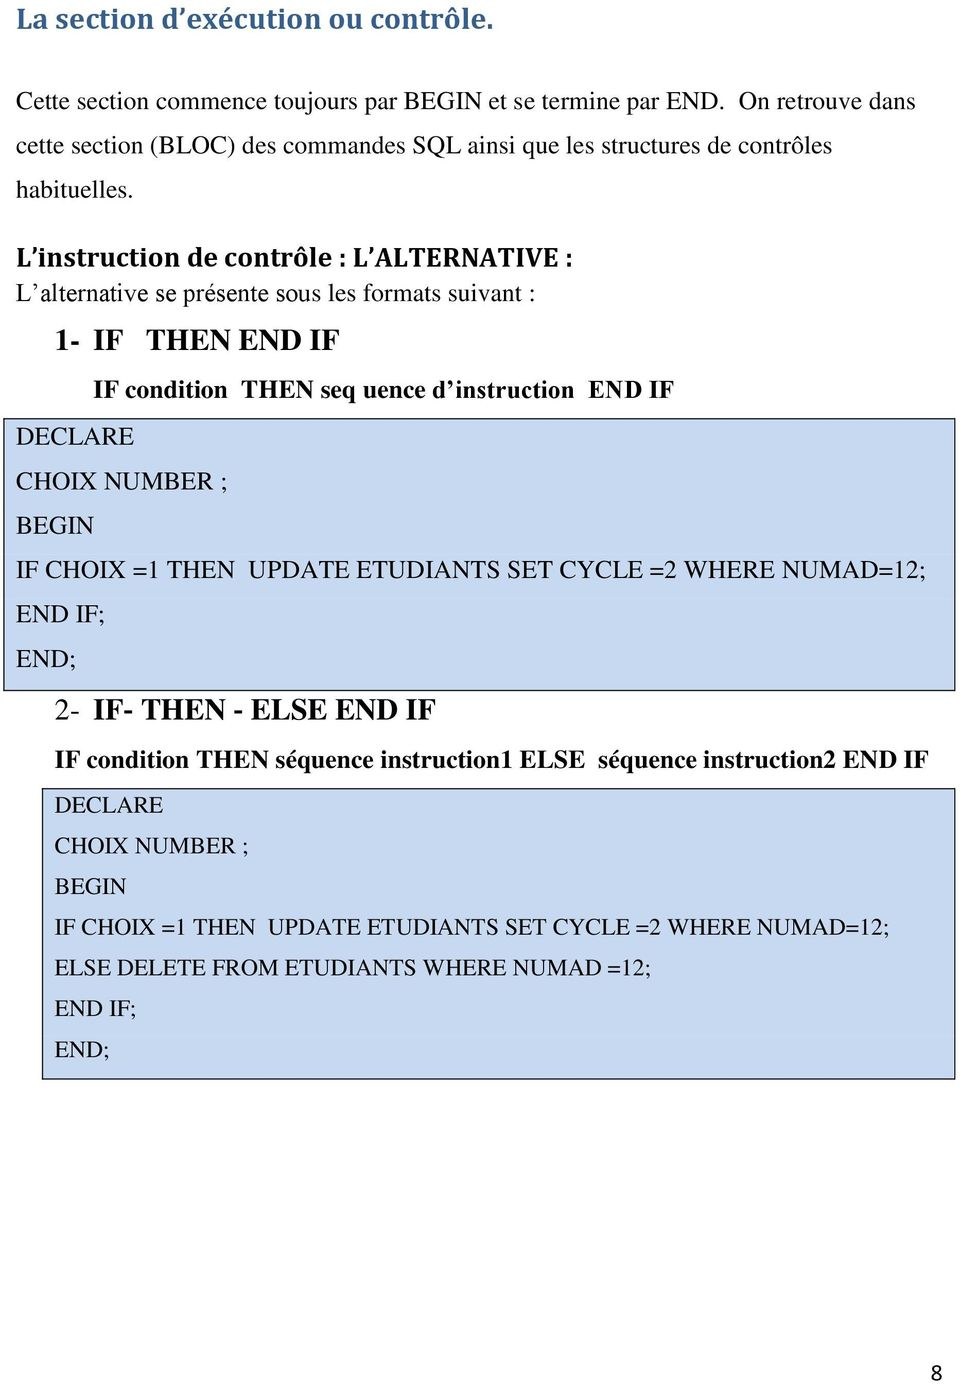 L instruction de contrôle : L ALTERNATIVE : L alternative se présente sous les formats suivant : 1- IF THEN END IF DECLARE IF condition THEN seq uence d instruction END IF